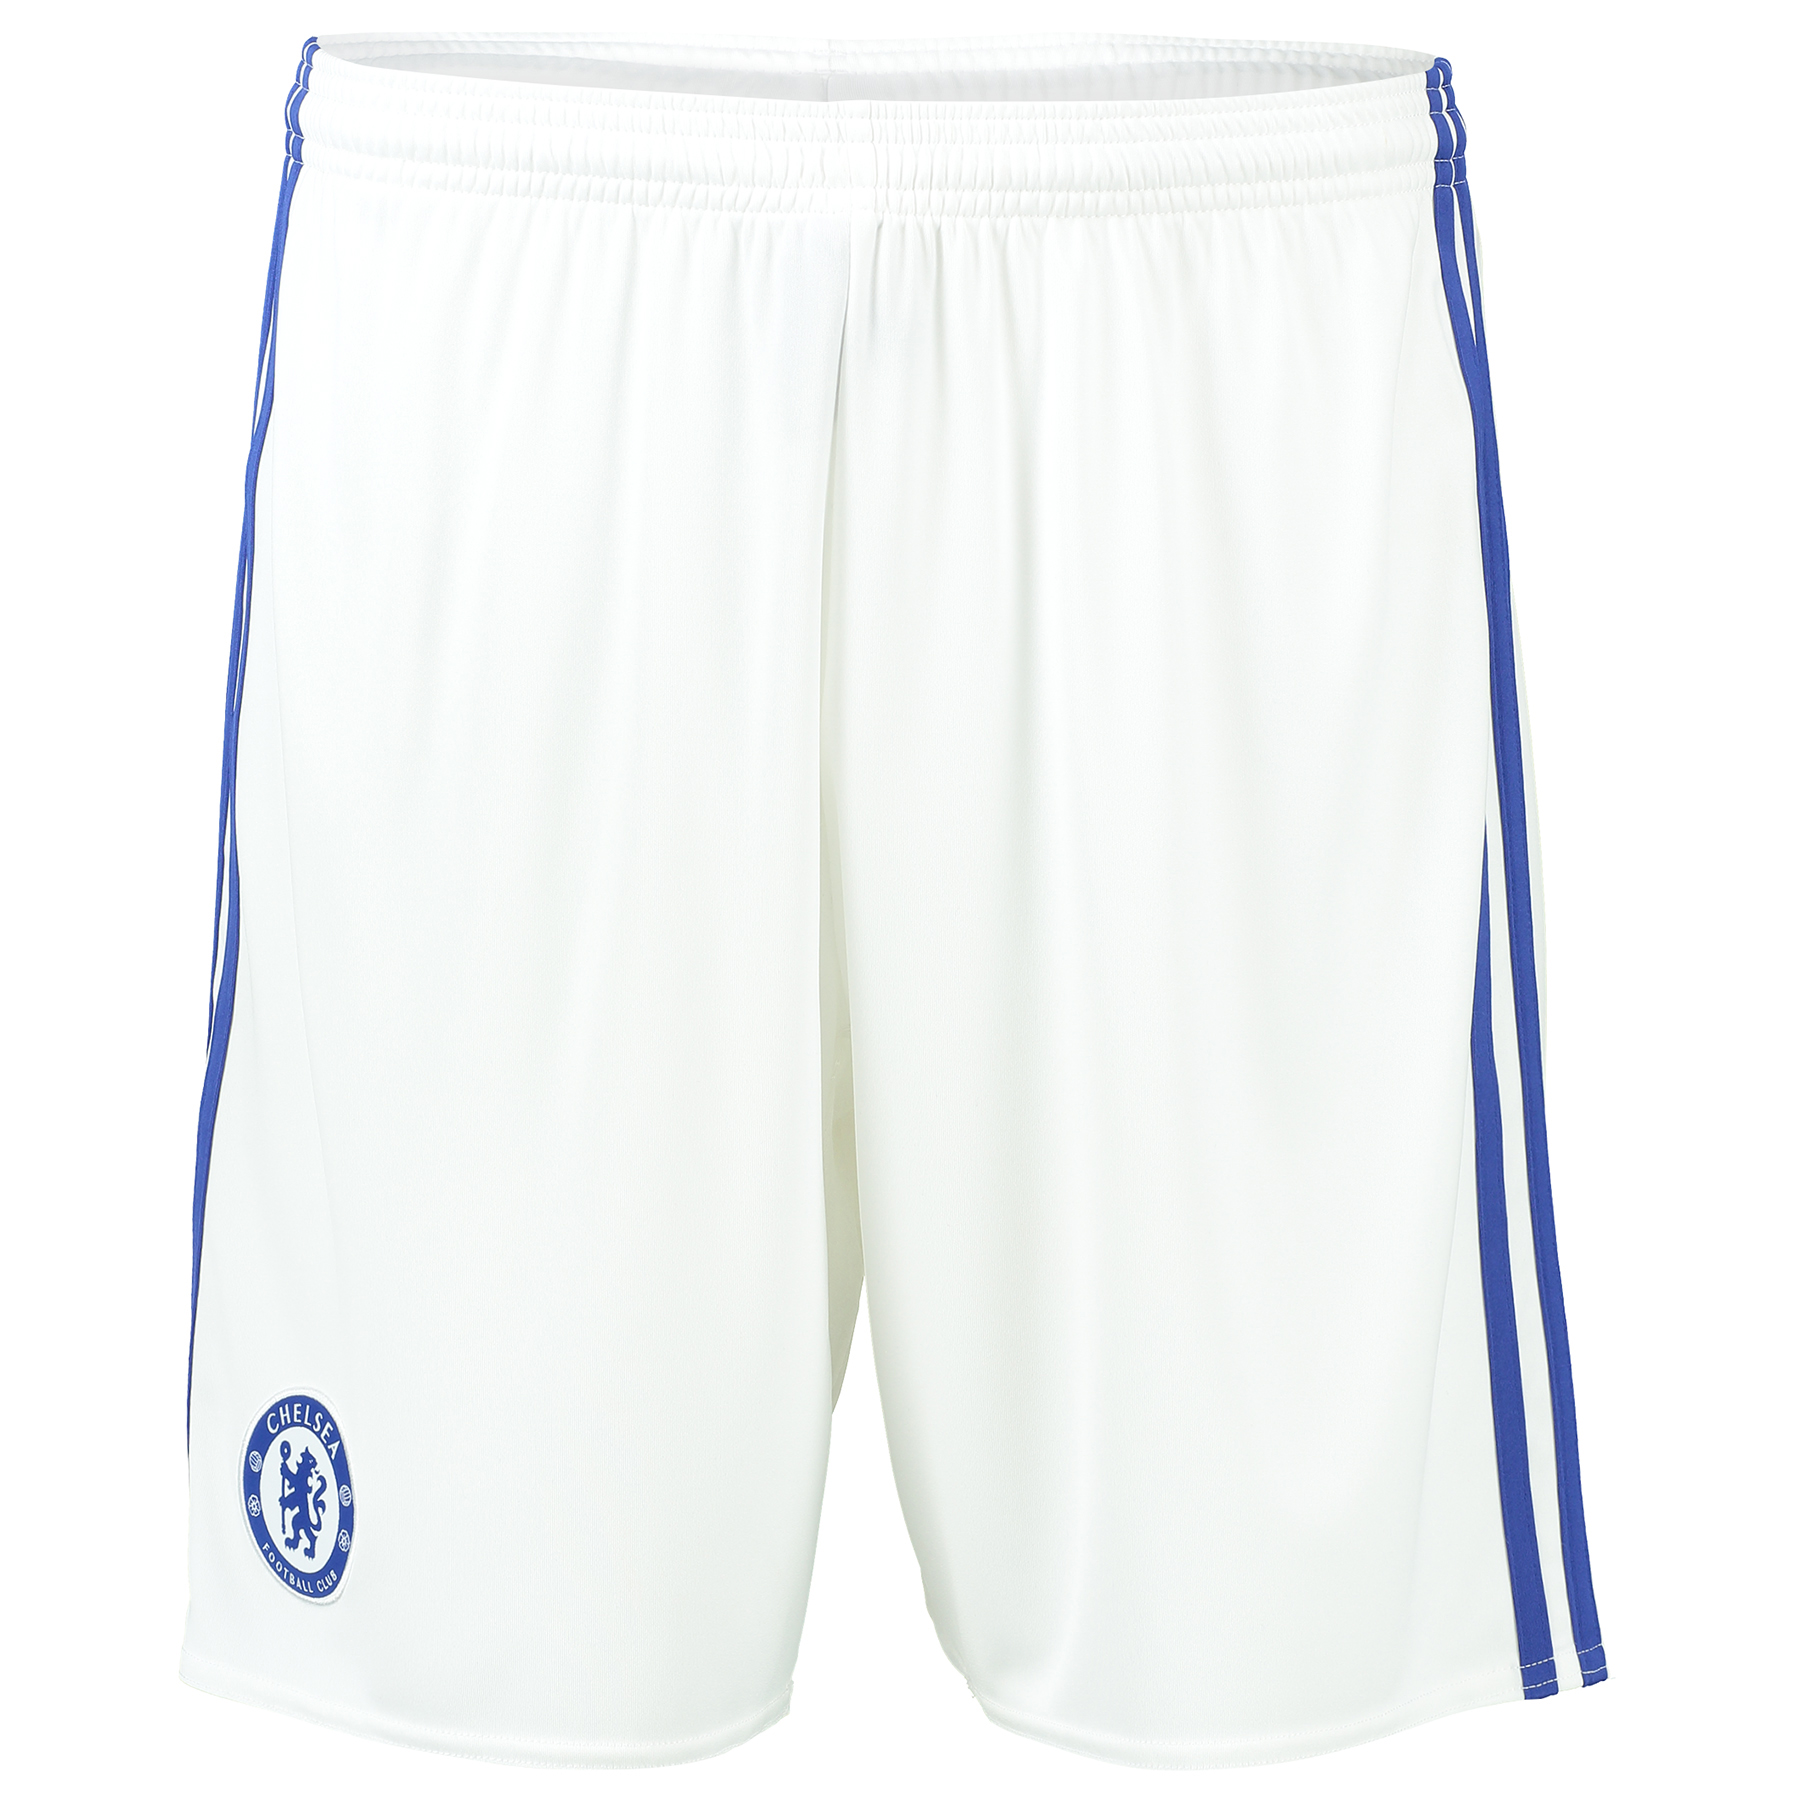 Chelsea Third Shorts 16-17   Enhance your professional matchday image with the Chelsea Third Shorts 2016-17, official kit to accompany the pride of London's newest third jersey.   With the club crest featured in woven form, these 2016-17 Chelsea third shorts reap the benefits of advanced climacool® heat and moisture management technology, ensuring a cool and comfortable experience for fans seeking to replicate their Stamford Bridge heroes.   Details:   Regular fit Ventilated climacool®  19 cm inseam (size 50) Drawcord on elastic waist Mesh inserts on inner legs Part of sustainable product program Chelsea FC woven club crest on right leg adidas brandmark screen-printed on back left leg adidas 3 Stripe branding on sides 100% recycled polyester interlock